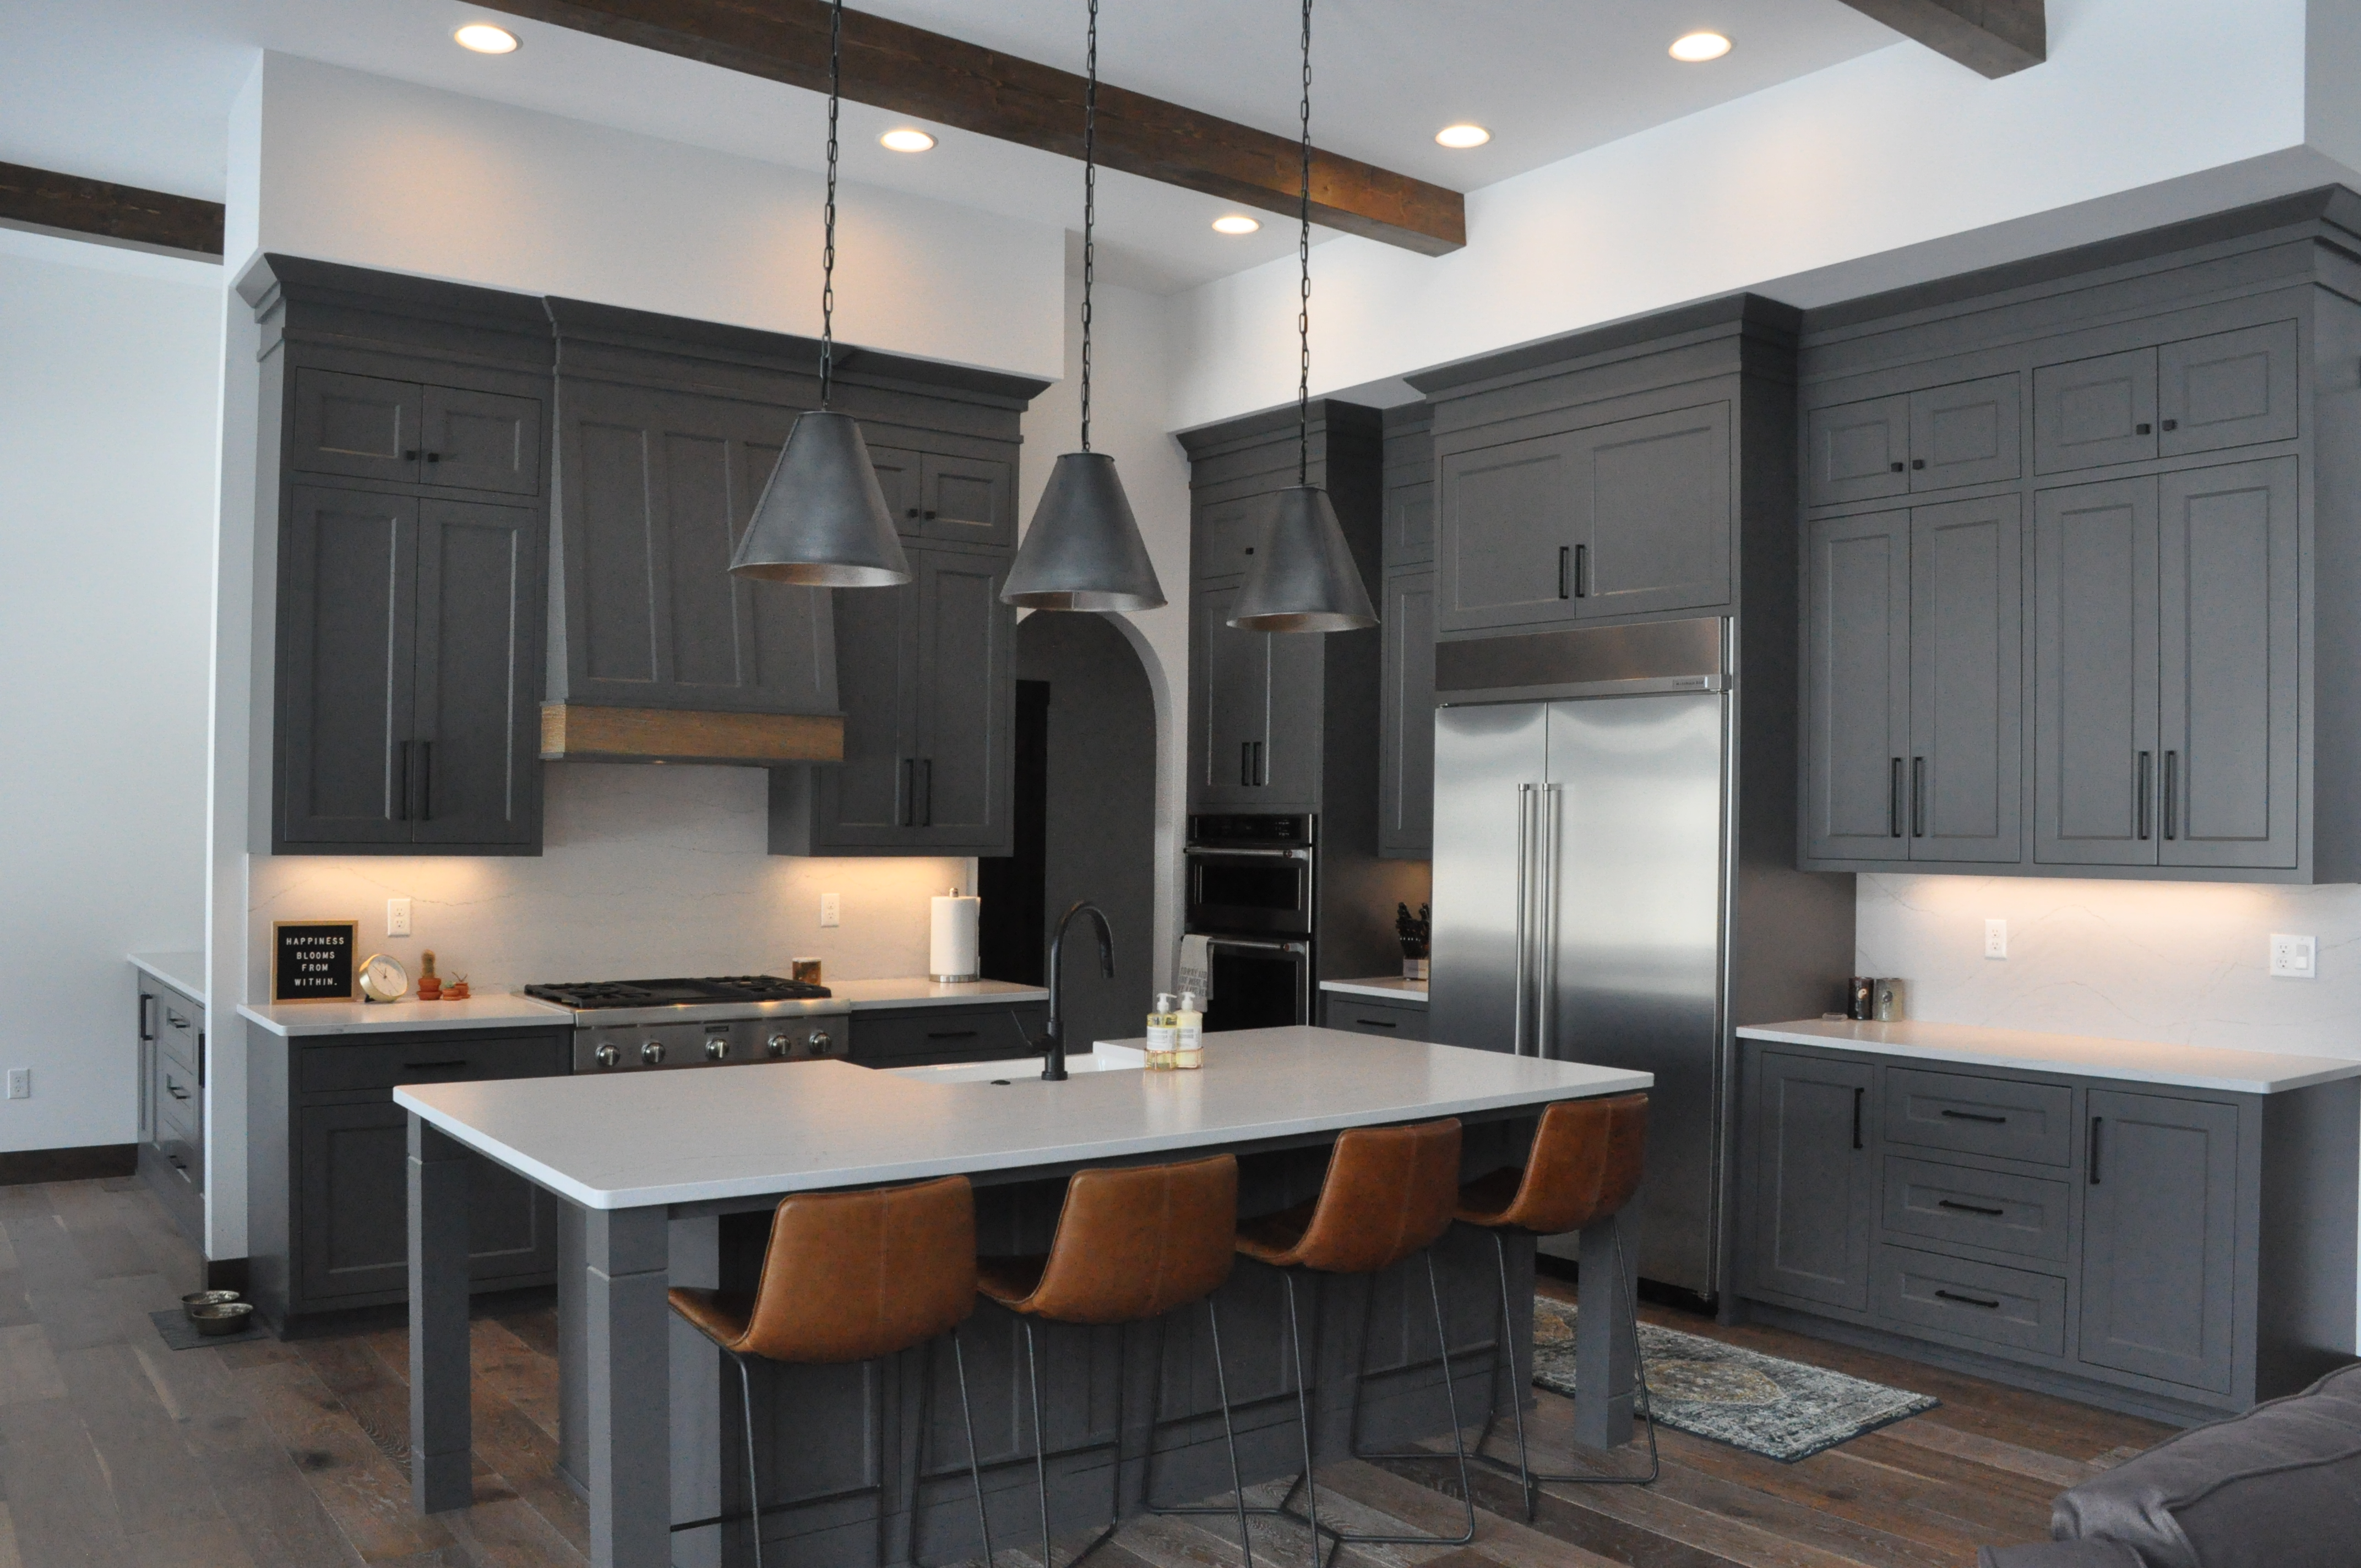 Modern Crown Molding For Kitchen Cabinets Offer More CabiChoices, with Less Hassle: Bayer Interior Woods